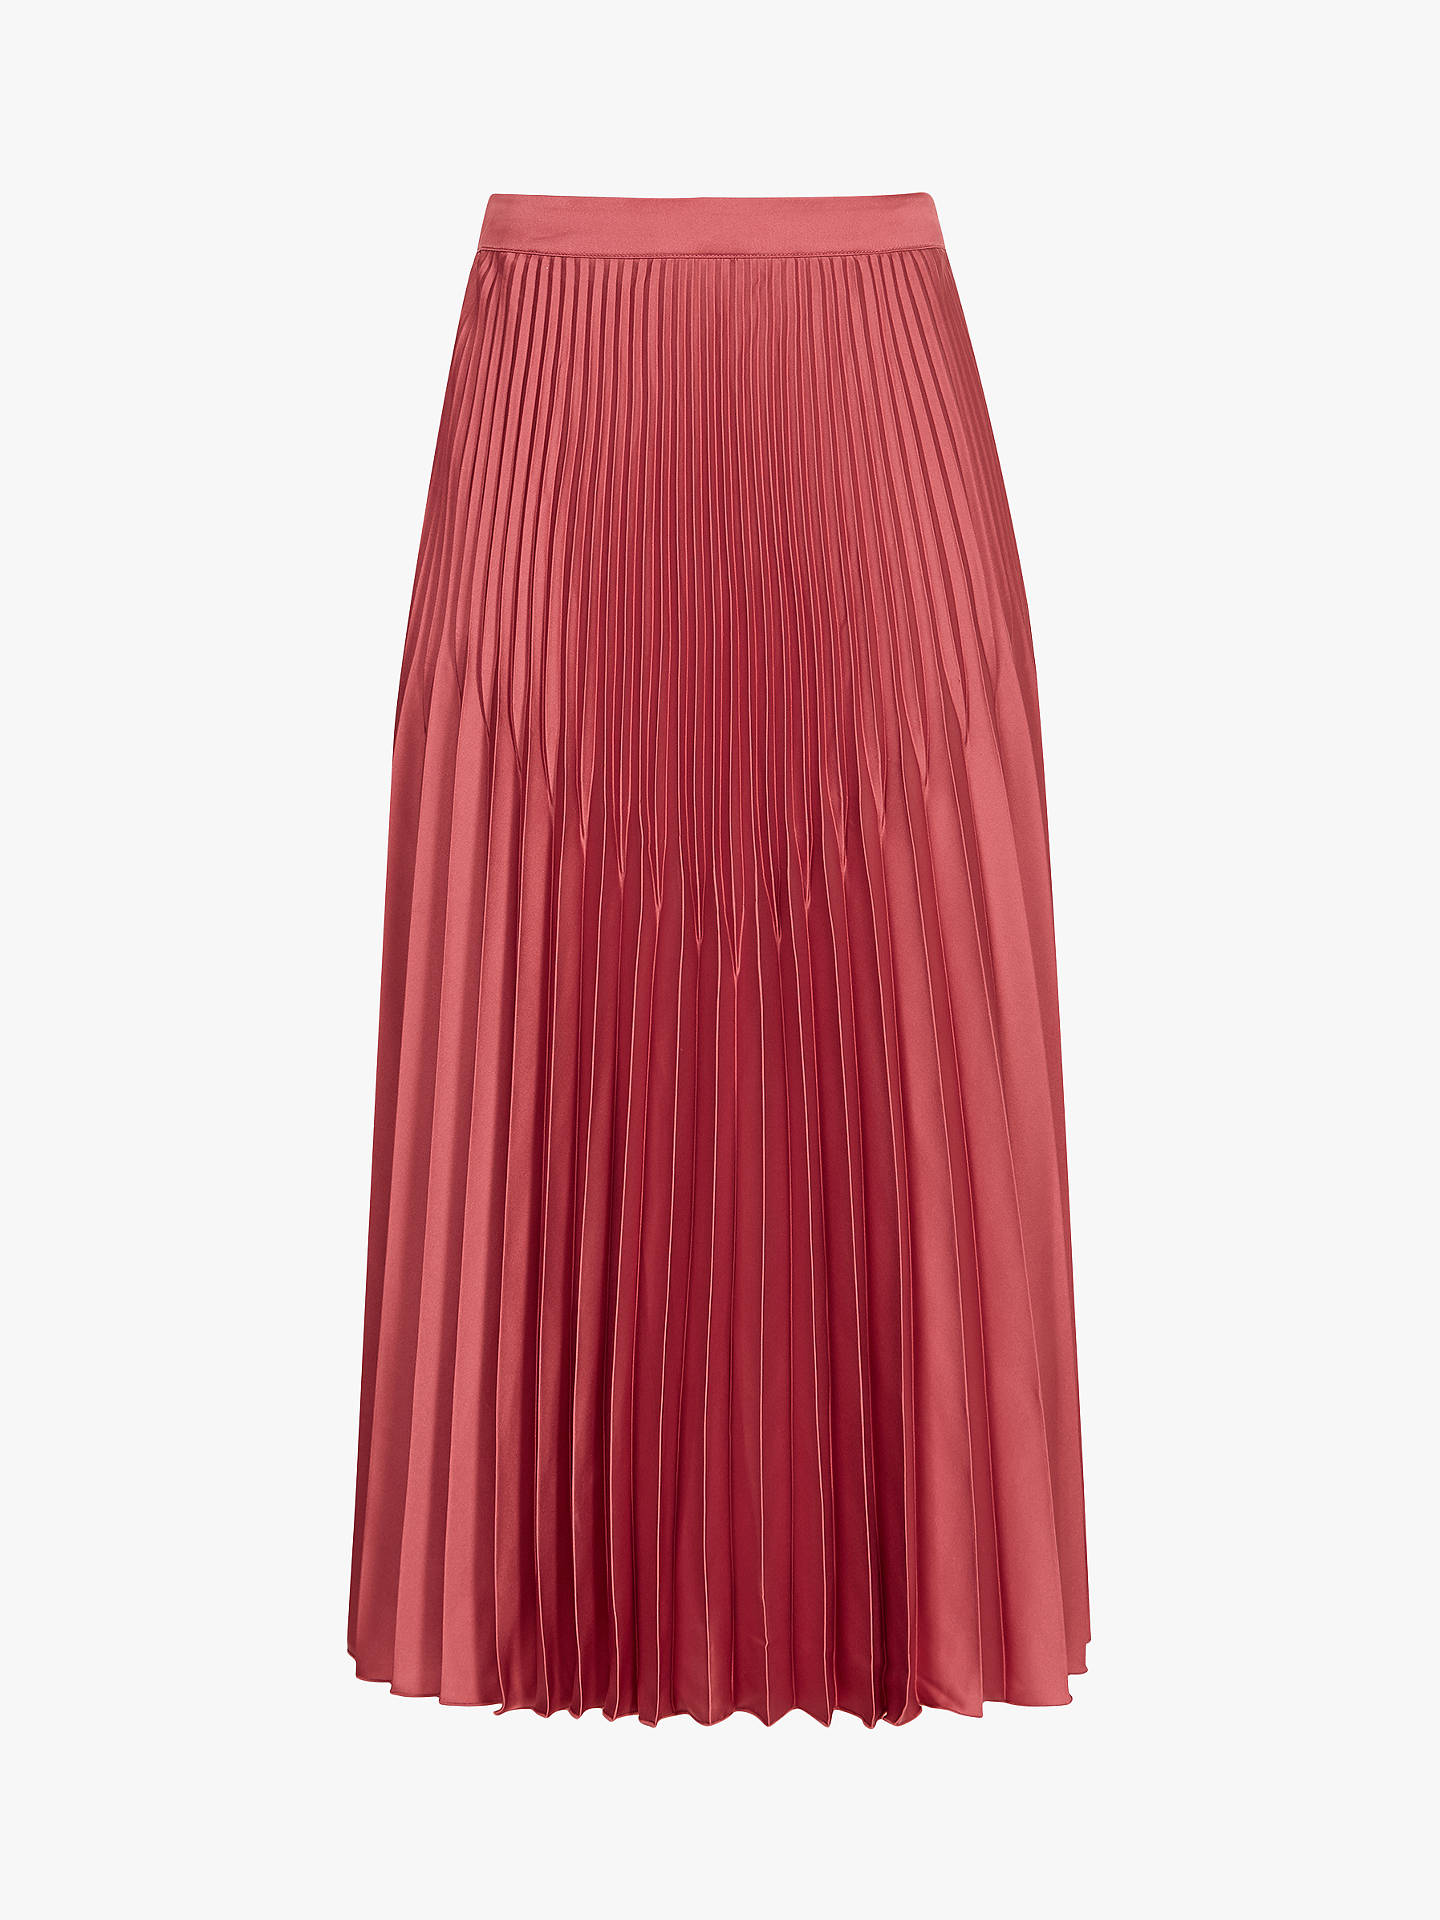 BuyReiss Isidora Metallic Knife Pleat Midi Skirt, Deep Blush, 14 Online at johnlewis.com